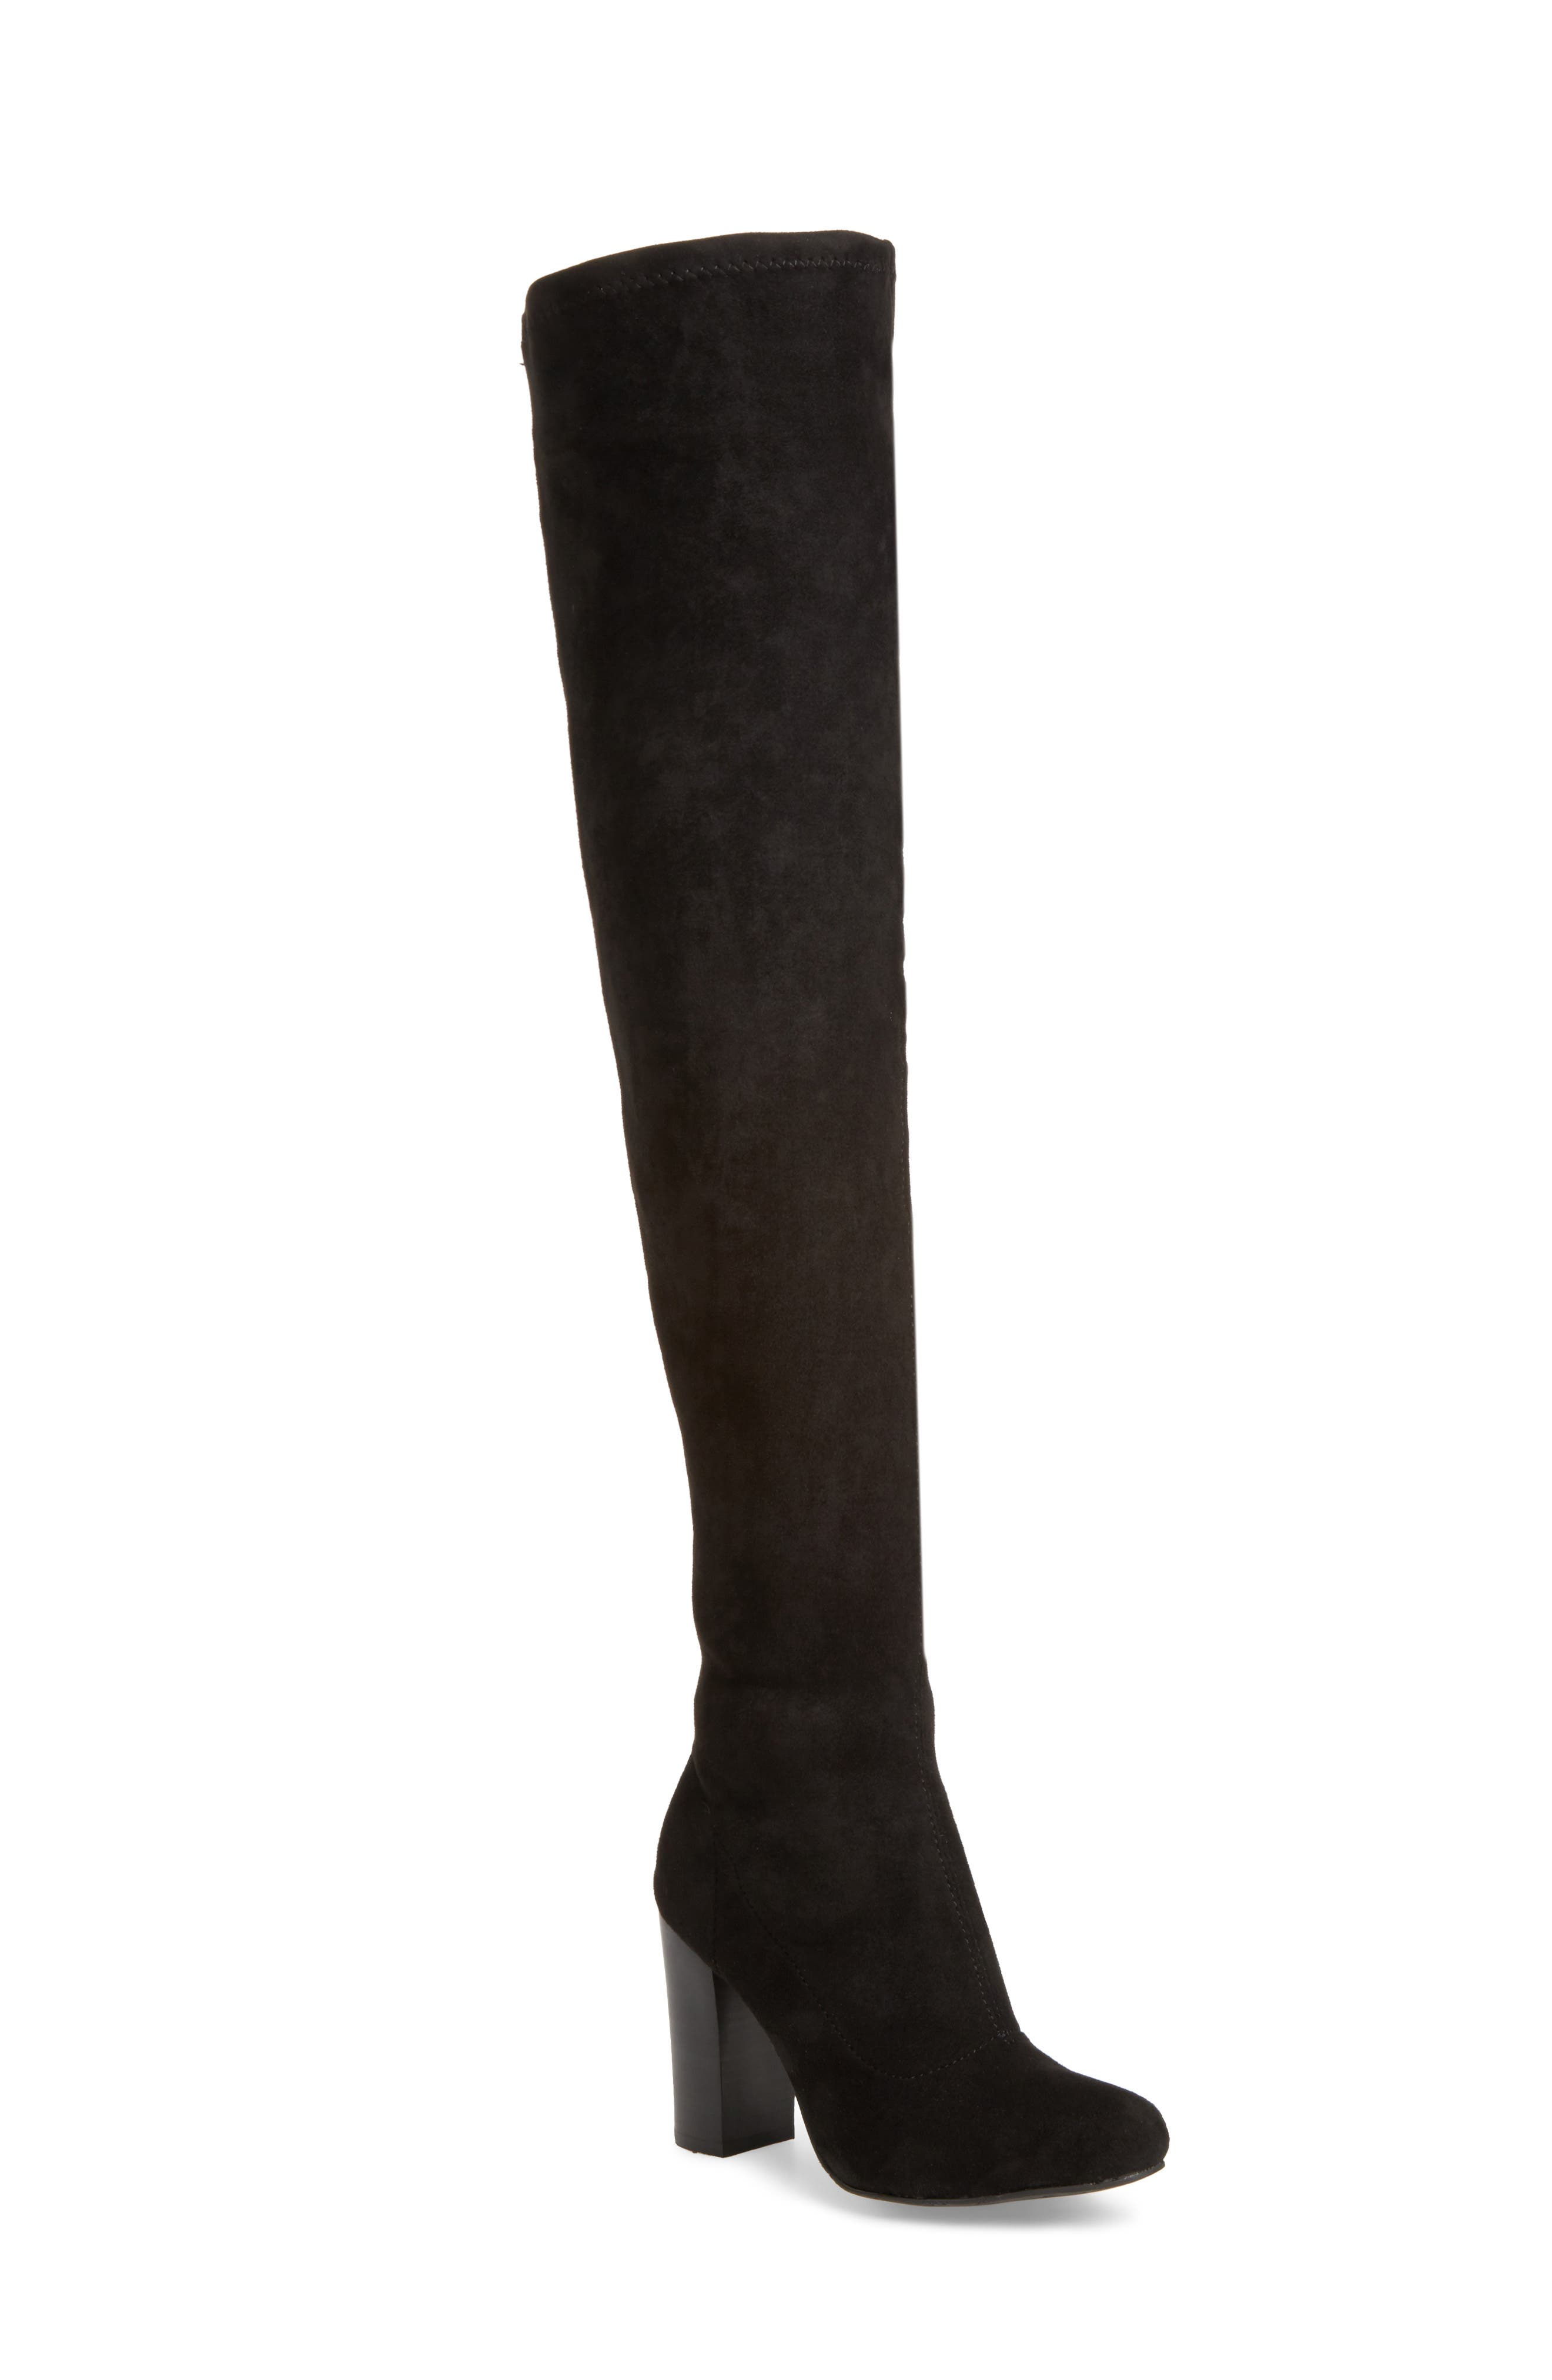 Main Image - MIA Christa Thigh High Boot (Women)